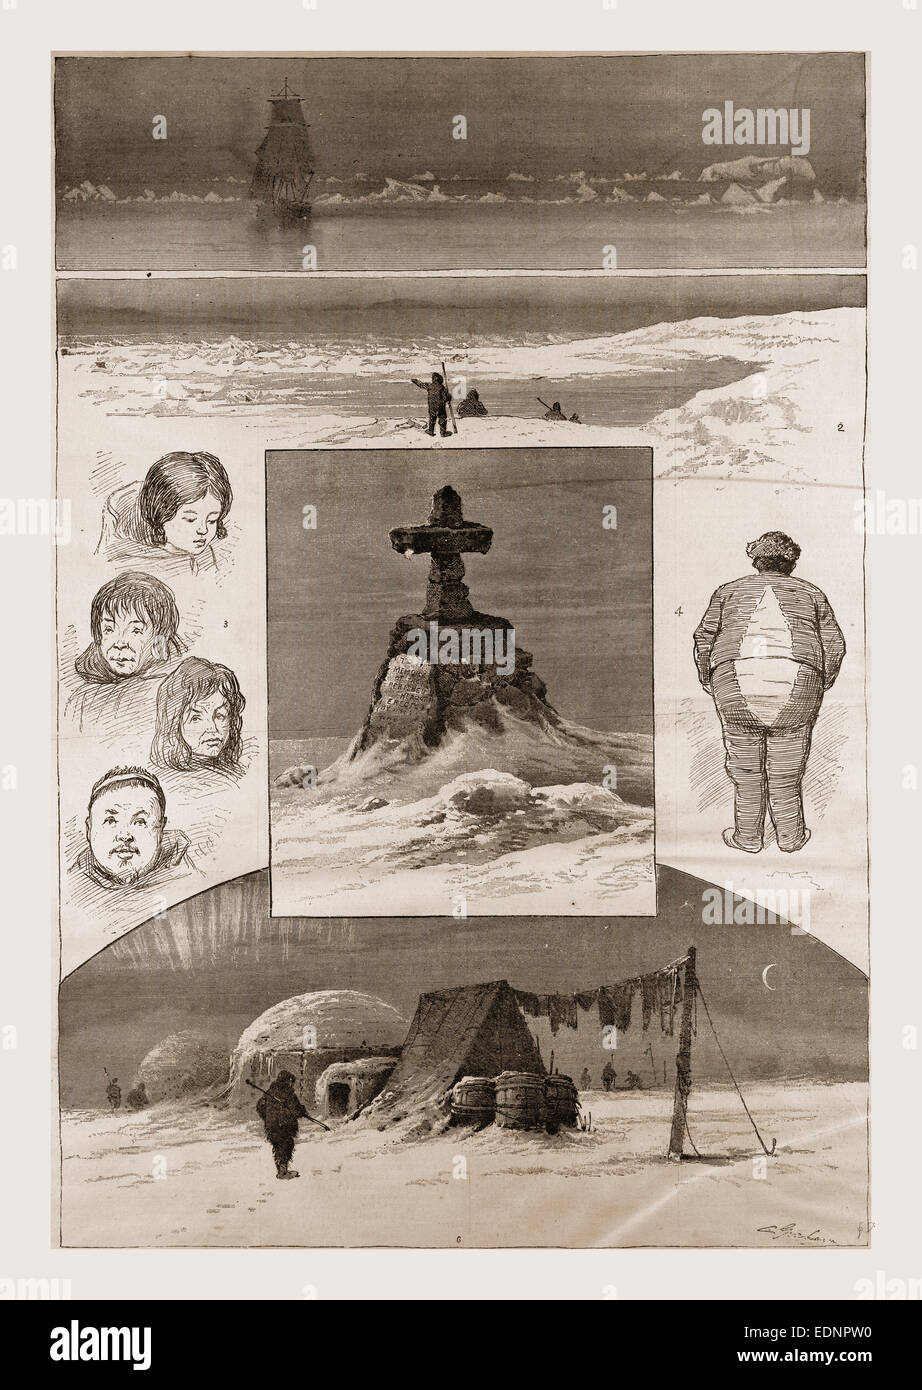 The search for Sir John Franklin, 1. Nearing the Ice-Pack. 2. Smith Point, where the Northwest Passage Ship sank. - Stock Image